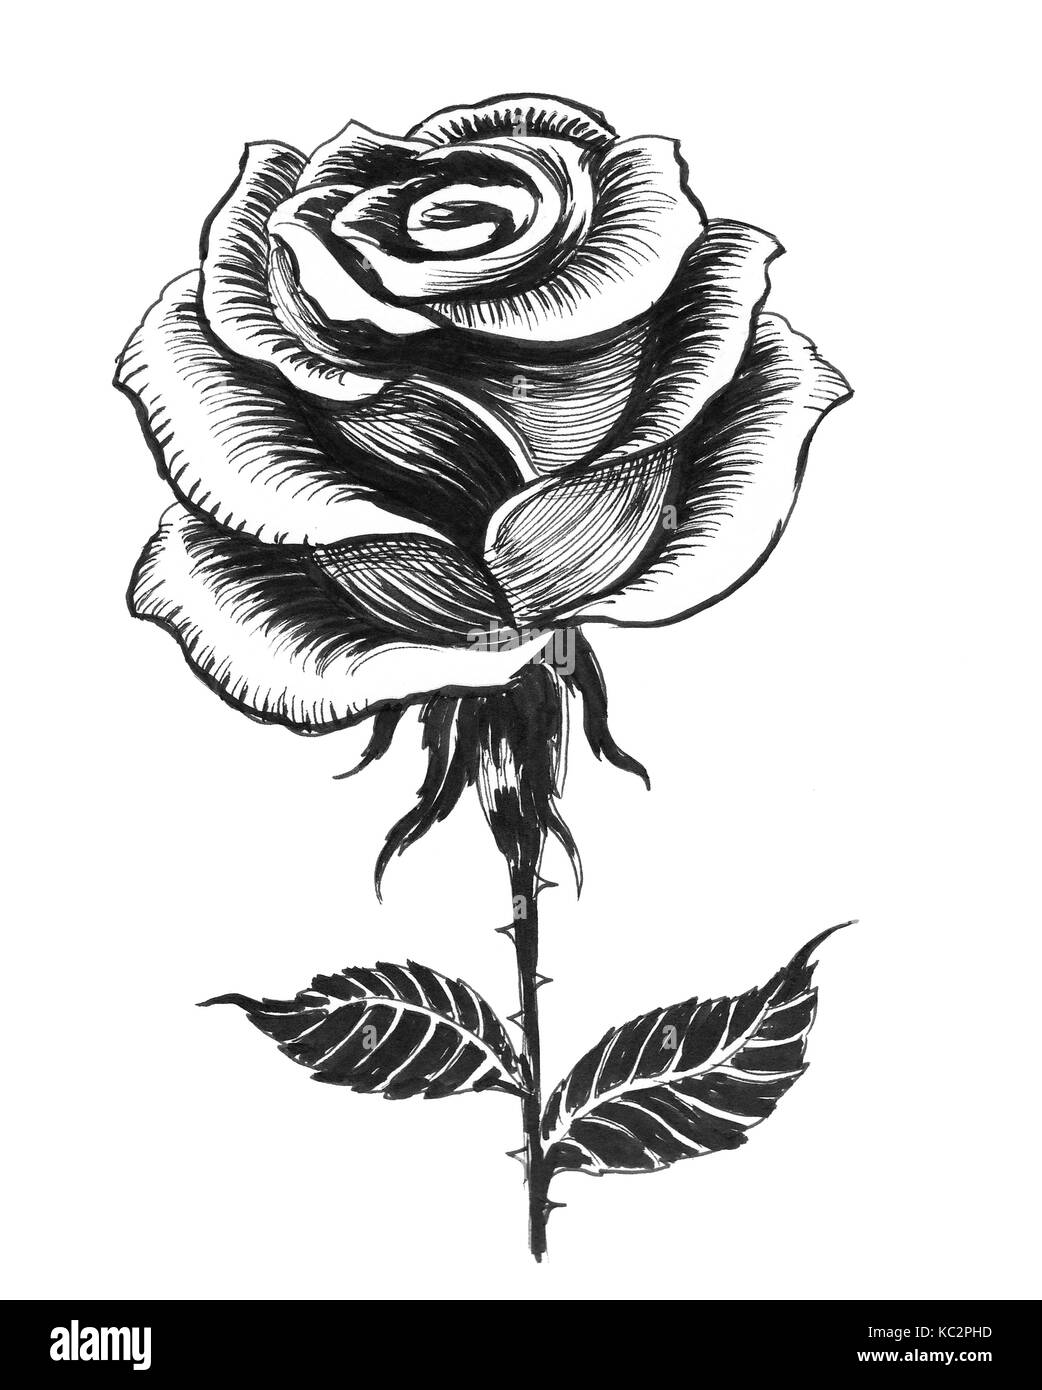 Ink Black And White Drawing Of A Single White Rose Stock Photo